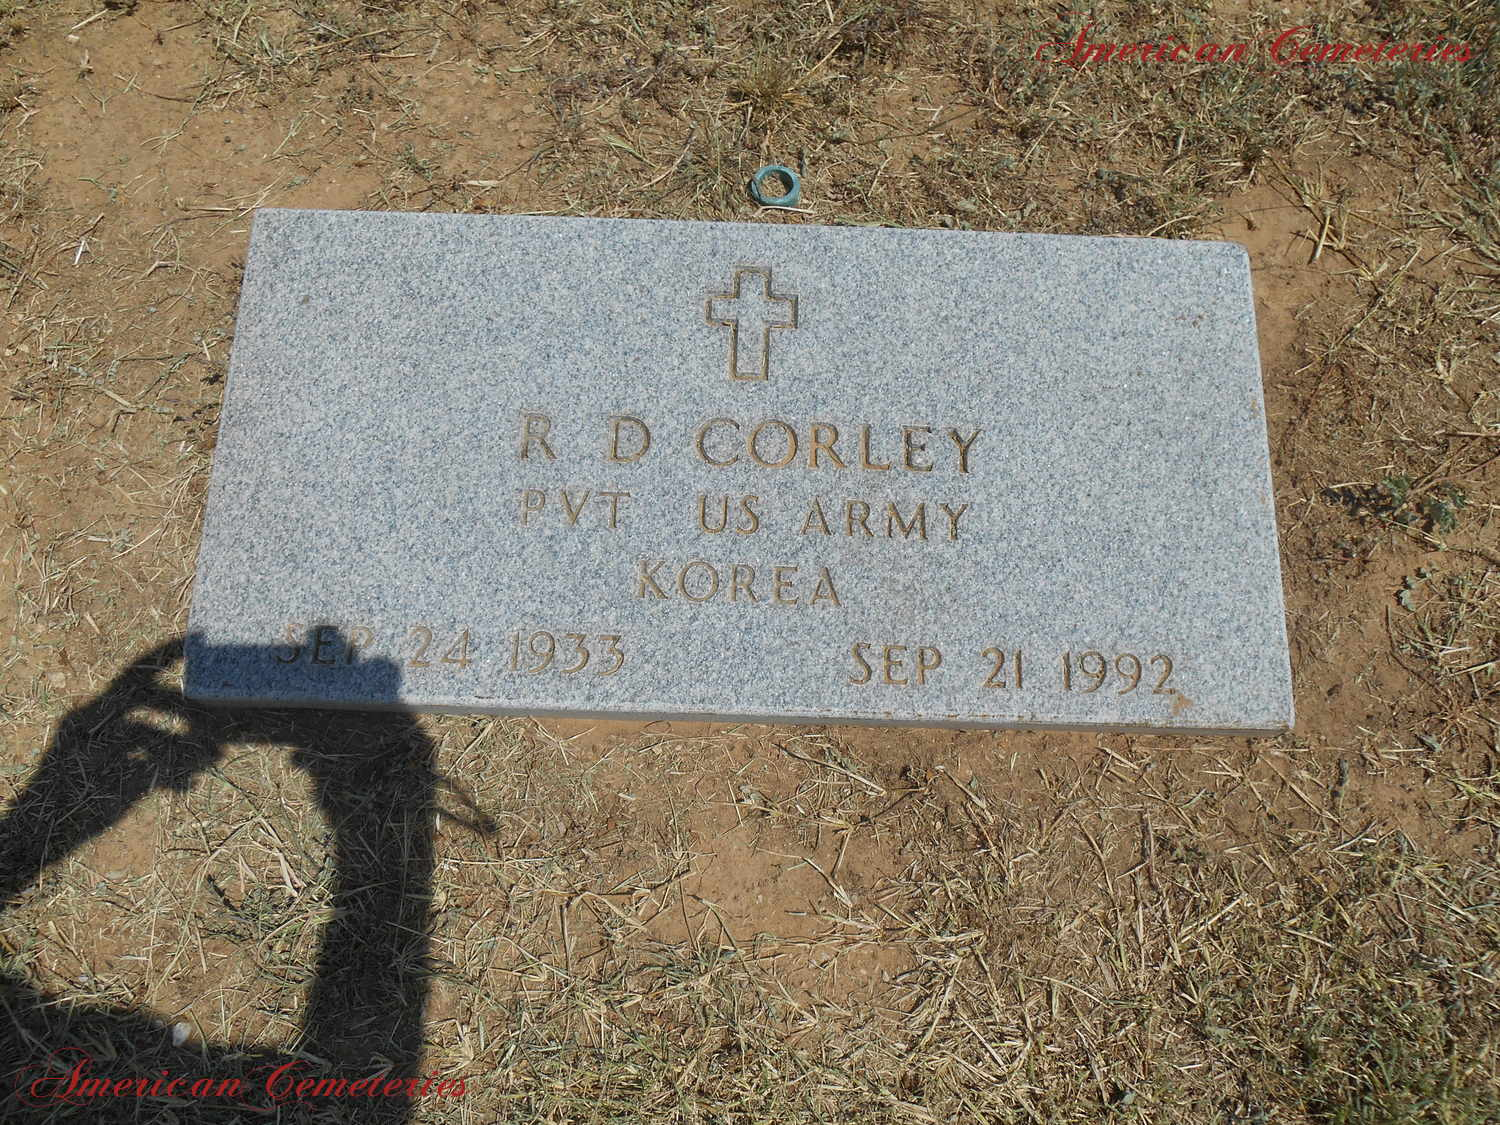 8977 furthermore 9223 as well 1361164 likewise Two Years After His Death Why Doesnt Chris Kyle Have Gravestone additionally Bachelor Contestant Nikki Ferrell Bikini Juan Pablo Galavis. on oscar austin gravesite